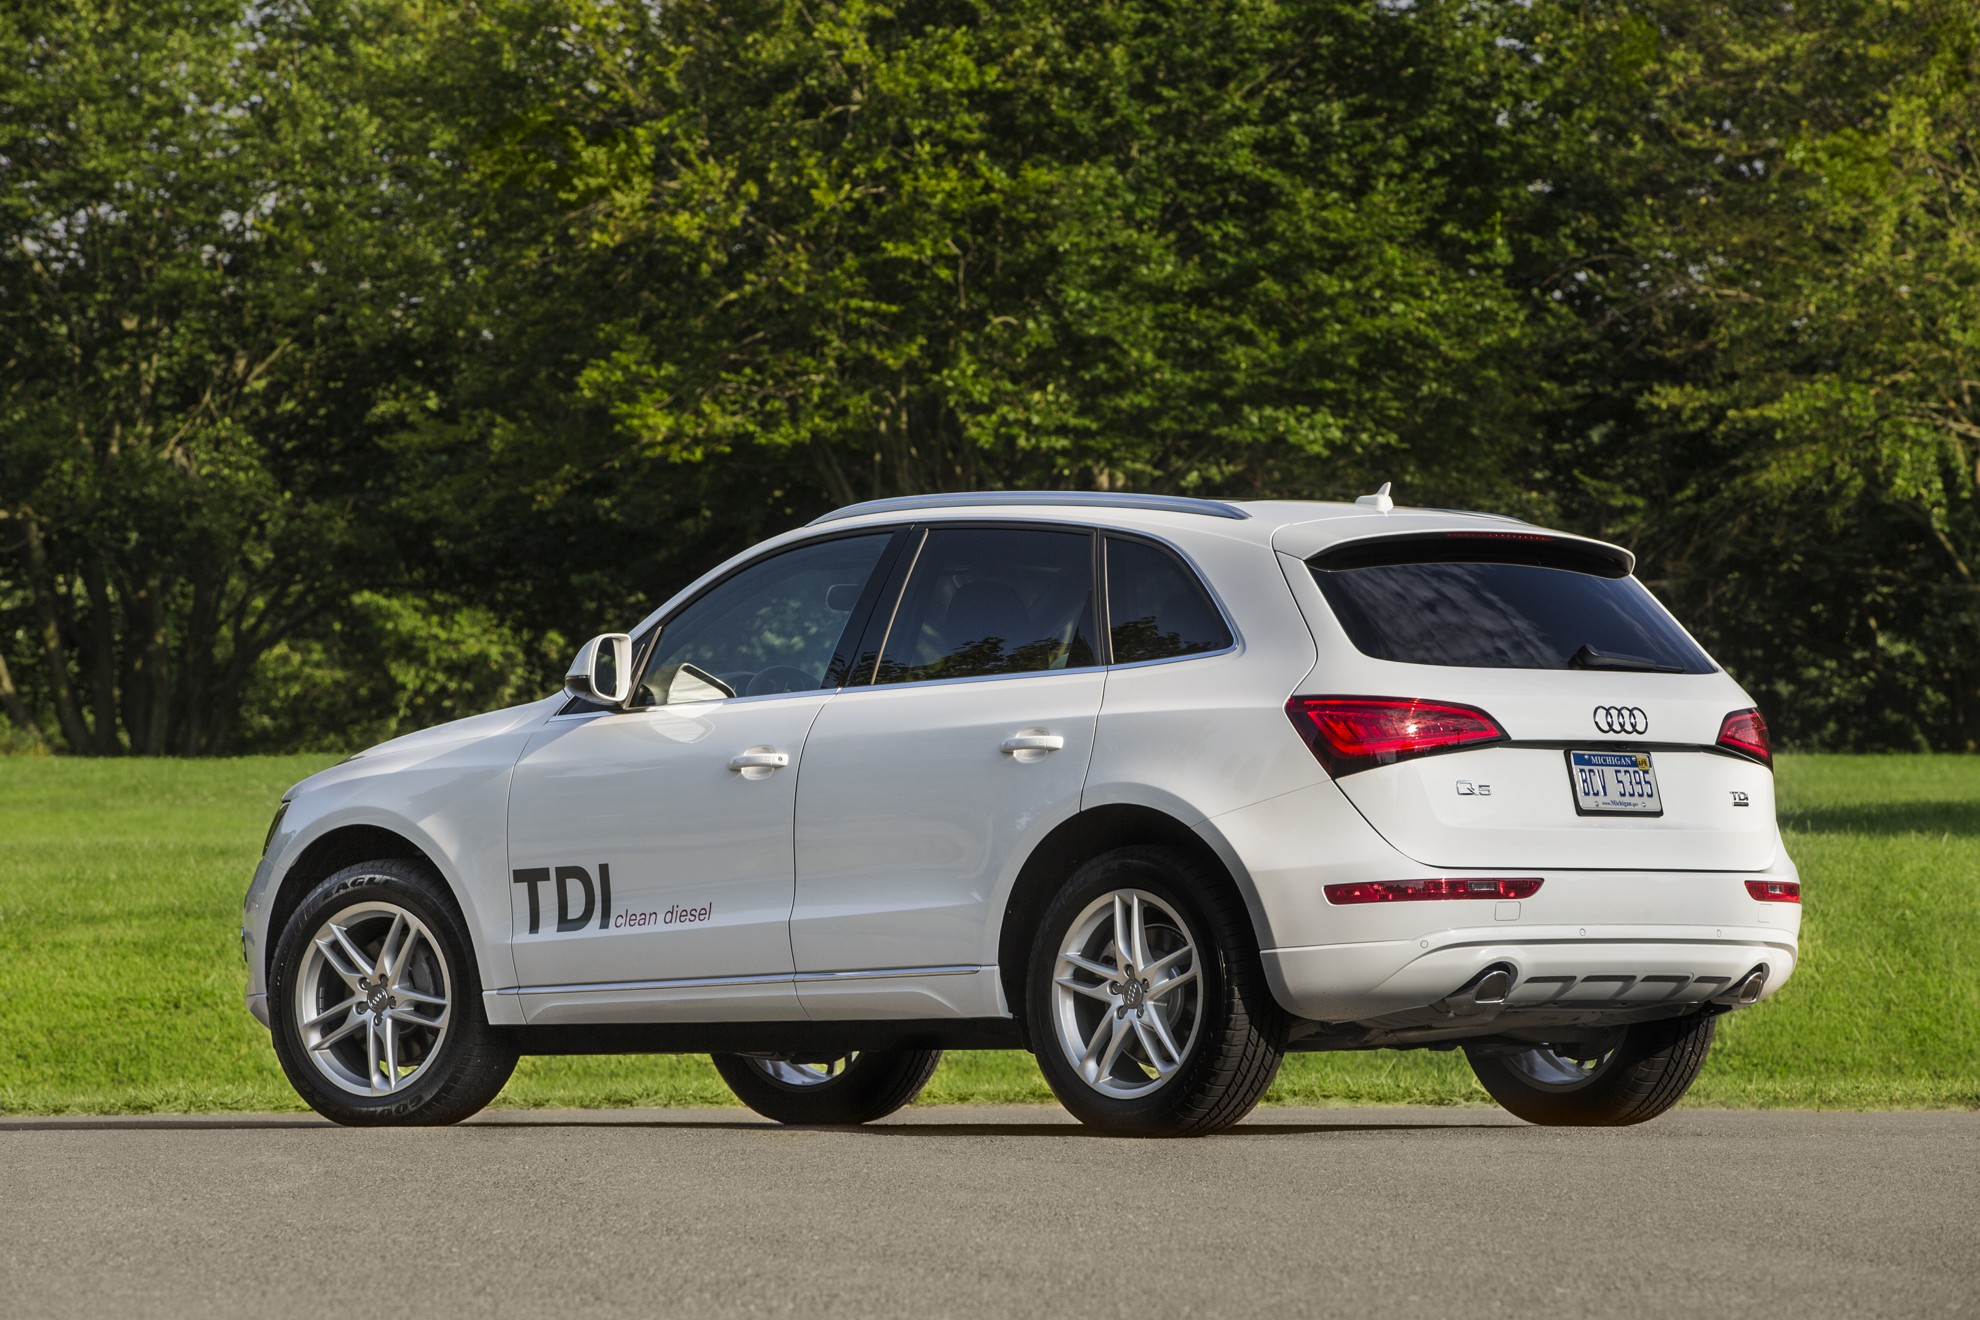 audi q5 named best luxury compact suv for families by u s news world report. Black Bedroom Furniture Sets. Home Design Ideas